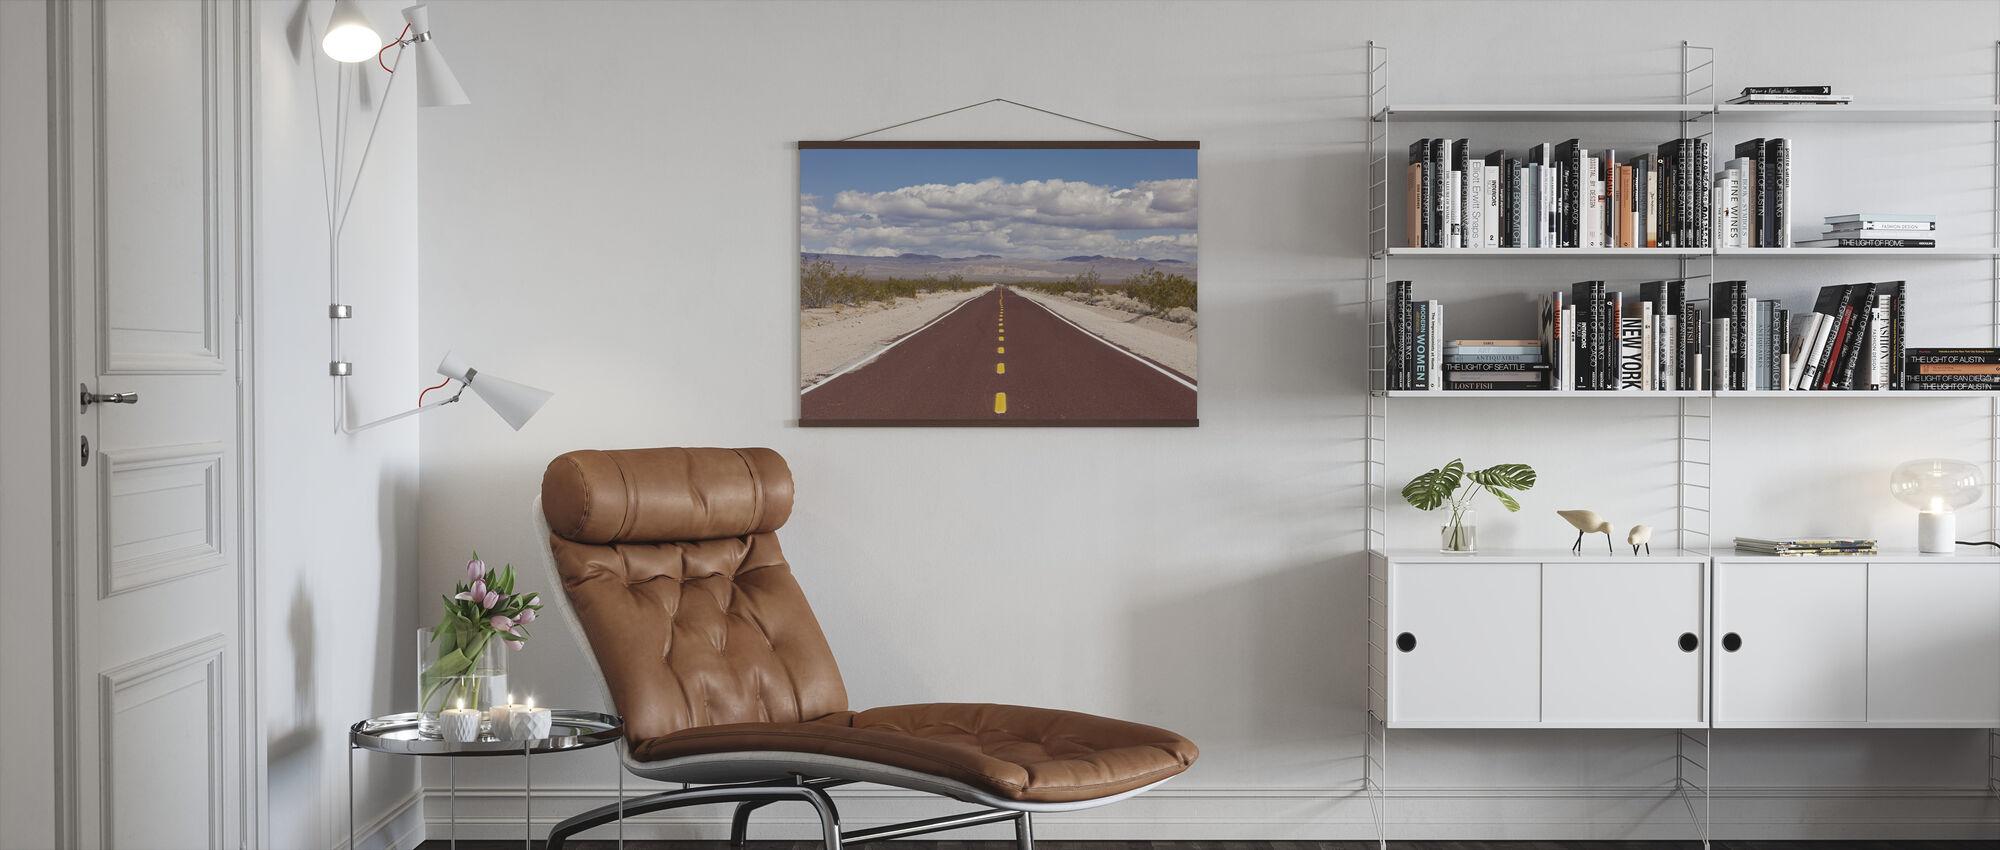 Infinity - Poster - Living Room